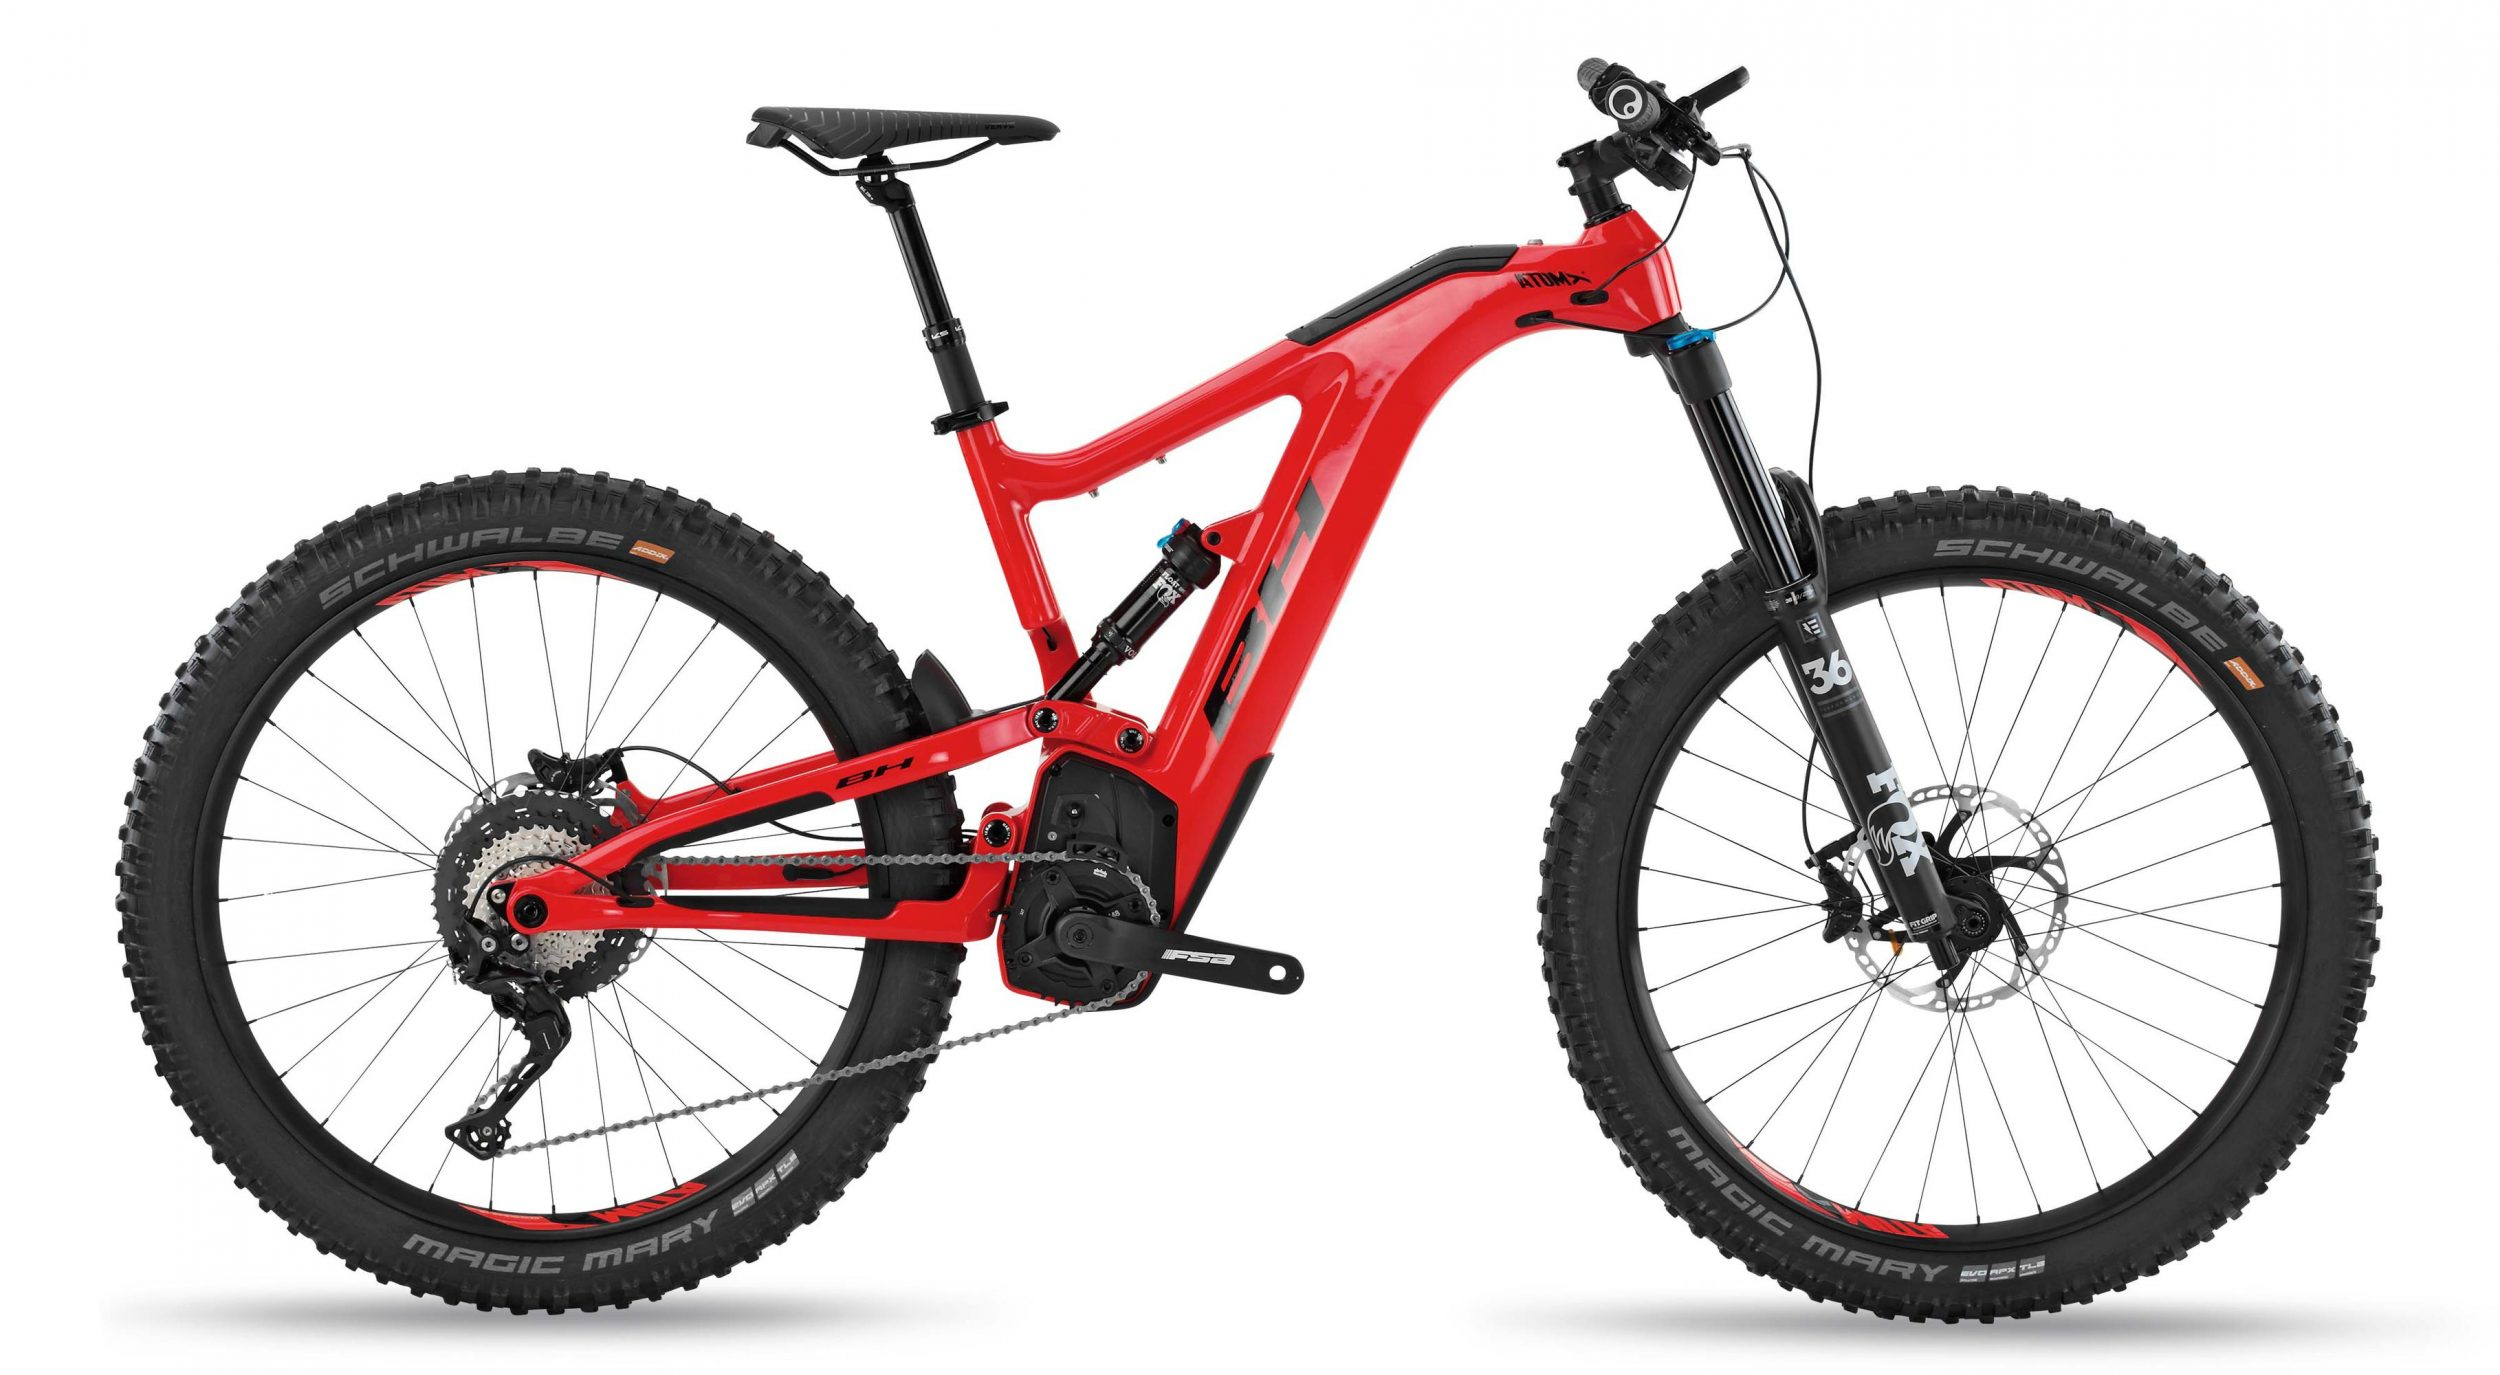 BH ATOM X CARBON LYNX 6 PRO-S 27,5   BROSE S MAG   BATTERY 720 Wh